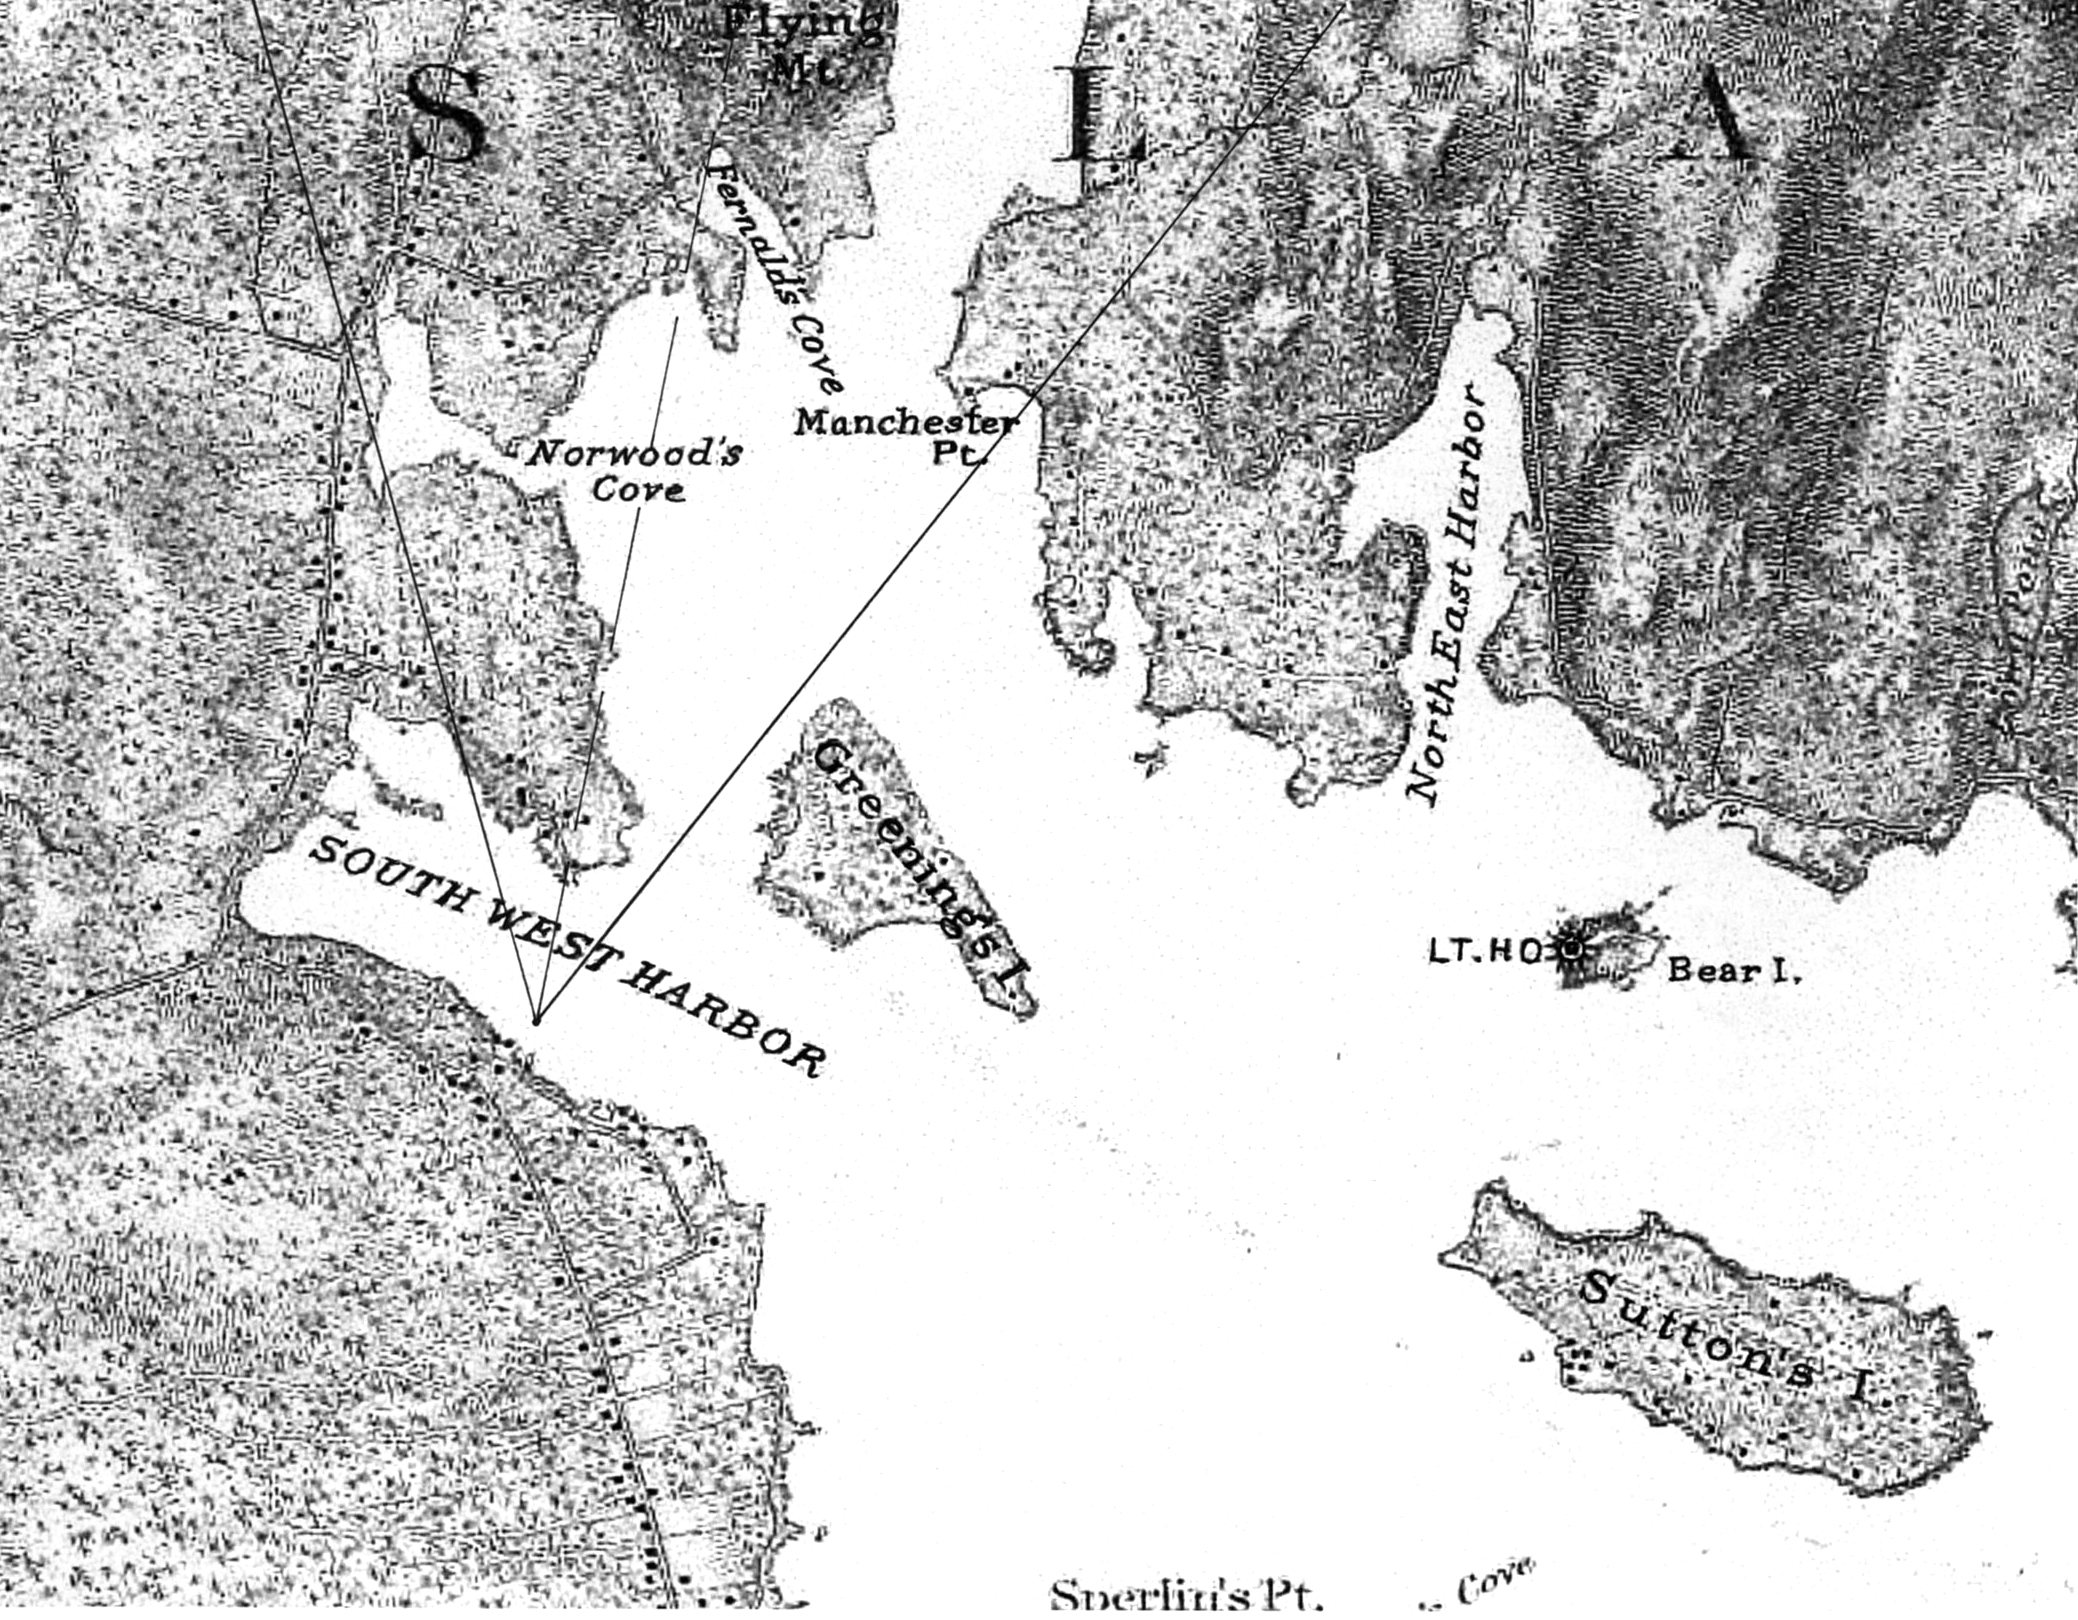 Fitz henry lane off mount desert island maine 185060 inv 263 proposed nvjuhfo Image collections